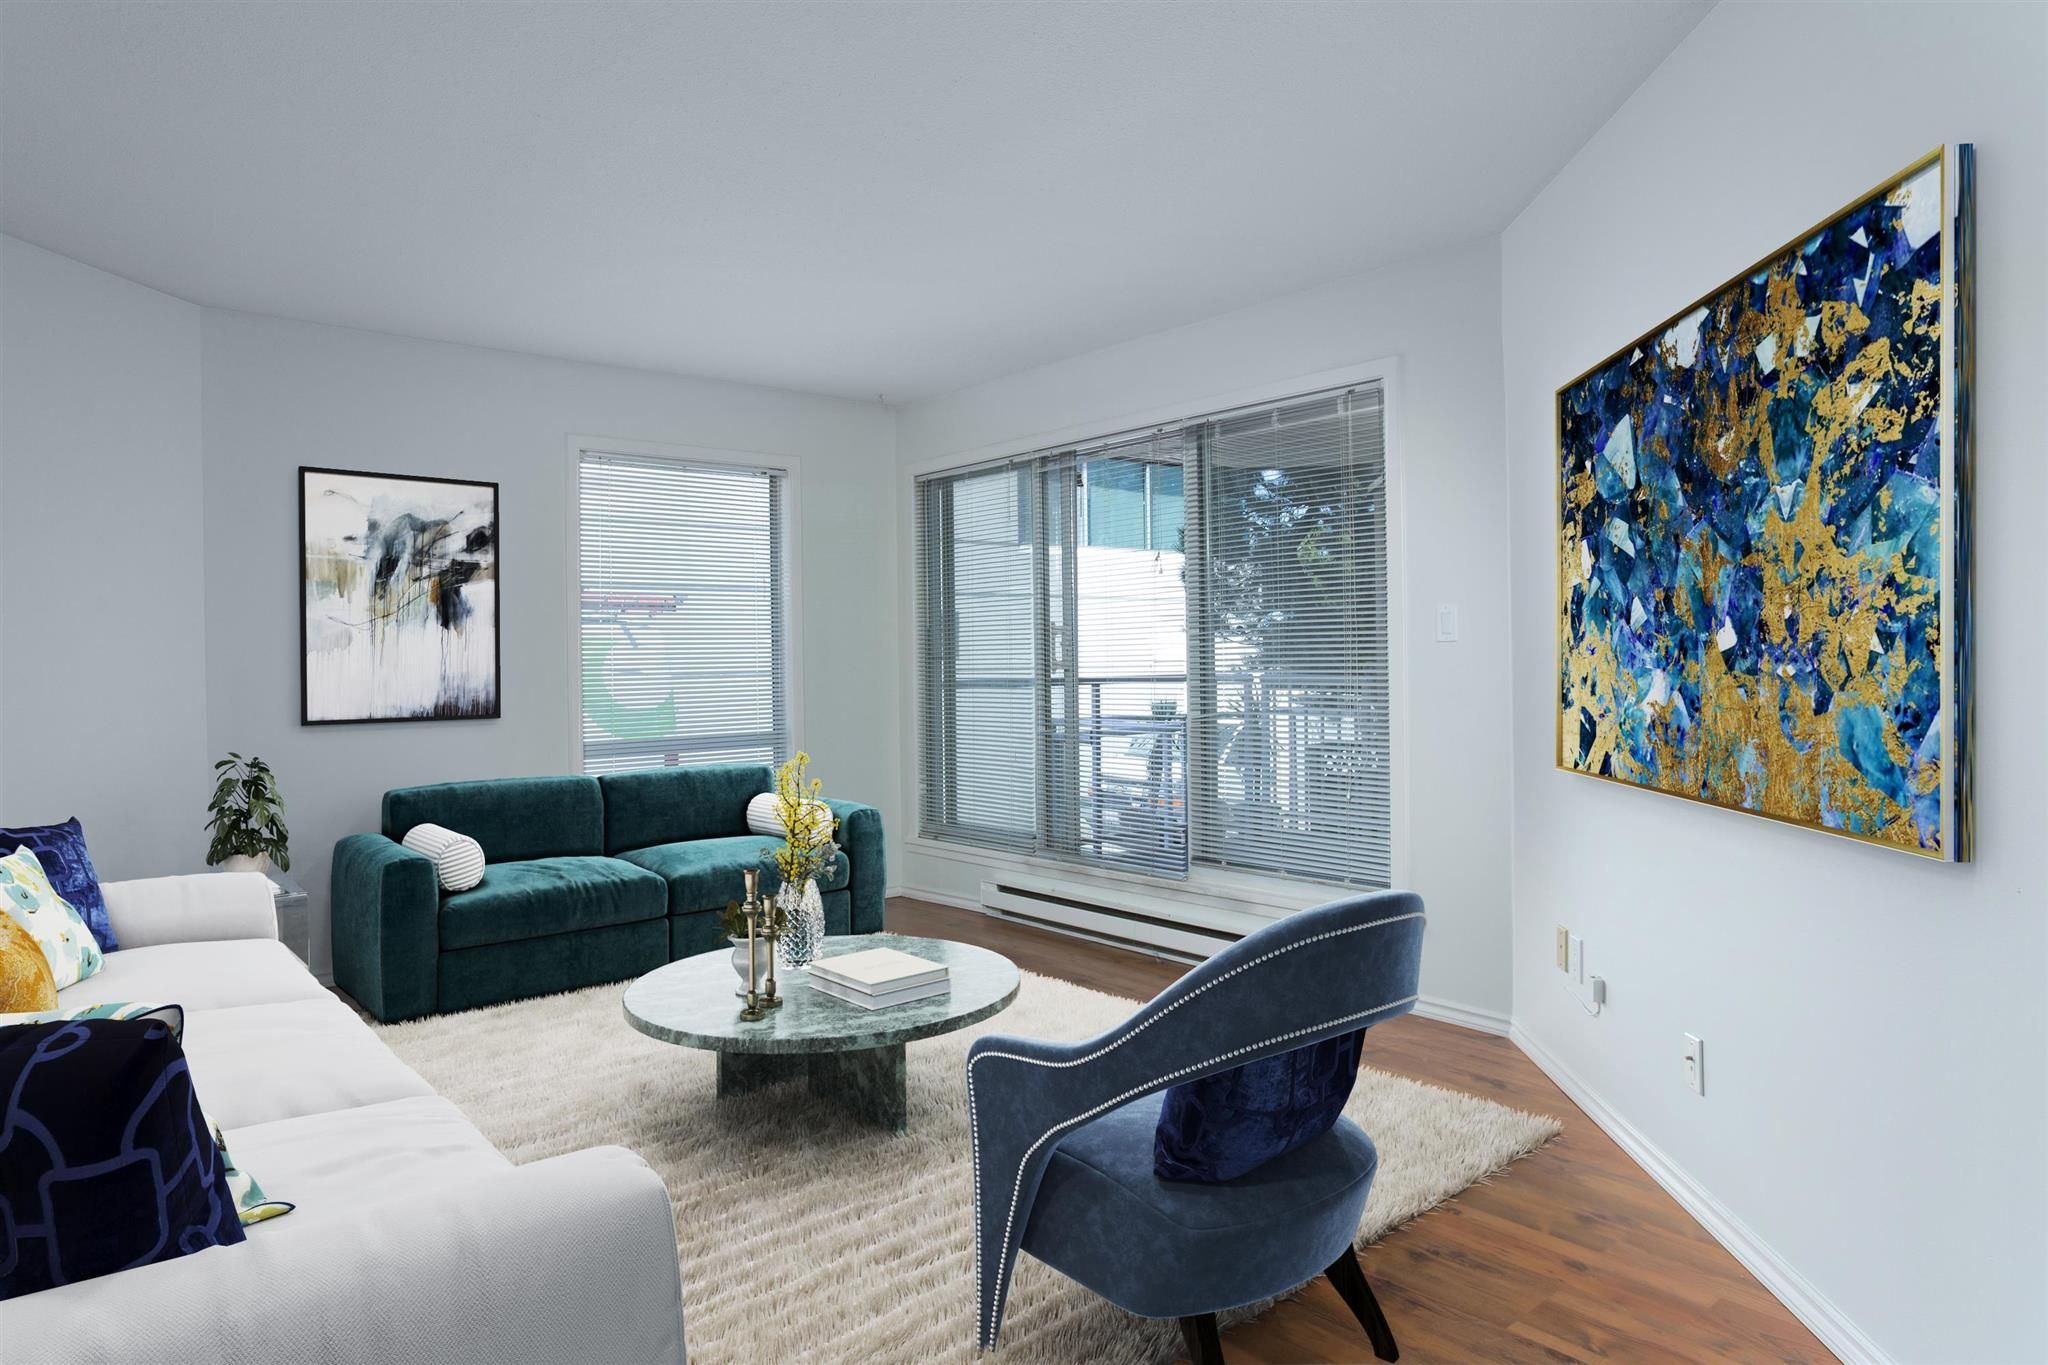 """Main Photo: 222 1236 W 8TH Avenue in Vancouver: Fairview VW Condo for sale in """"Galeria II"""" (Vancouver West)  : MLS®# R2598424"""